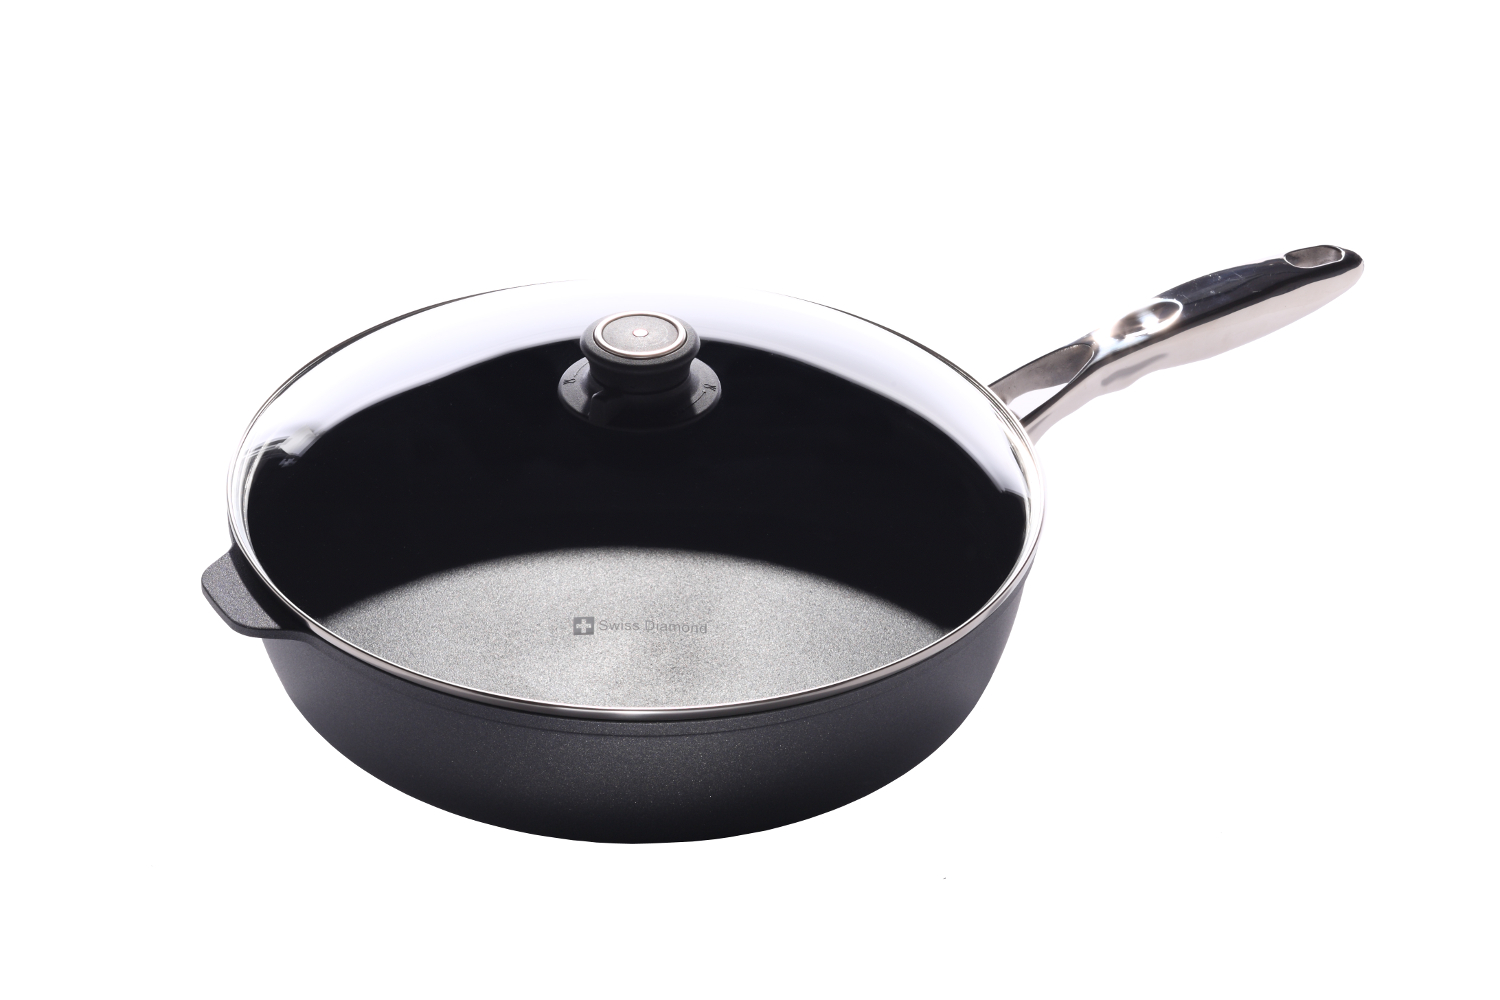 Swiss Diamond Nonstick 5.8 qt. Saute Pan w/Stainless Steel Handle & Lid